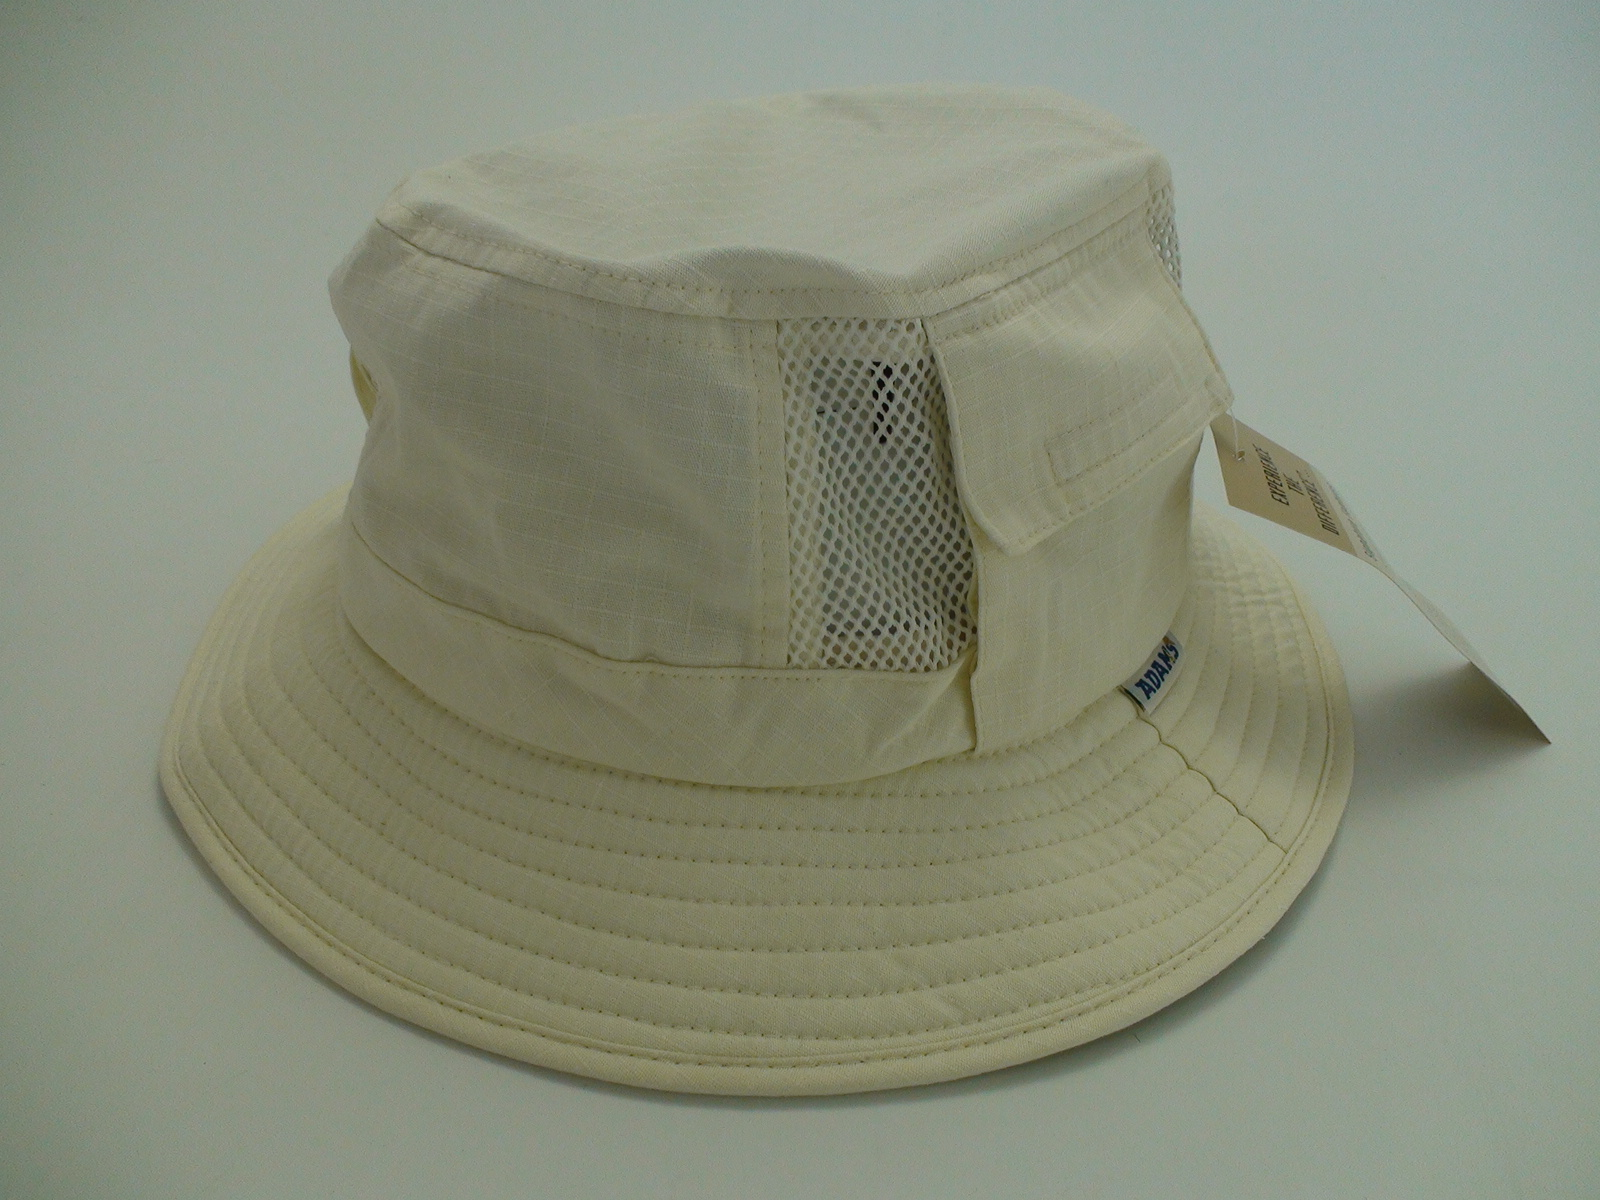 dd78efa8e79 Adams Ivory 100% Cotton Vented Outdoor Fishing Bucket Hat